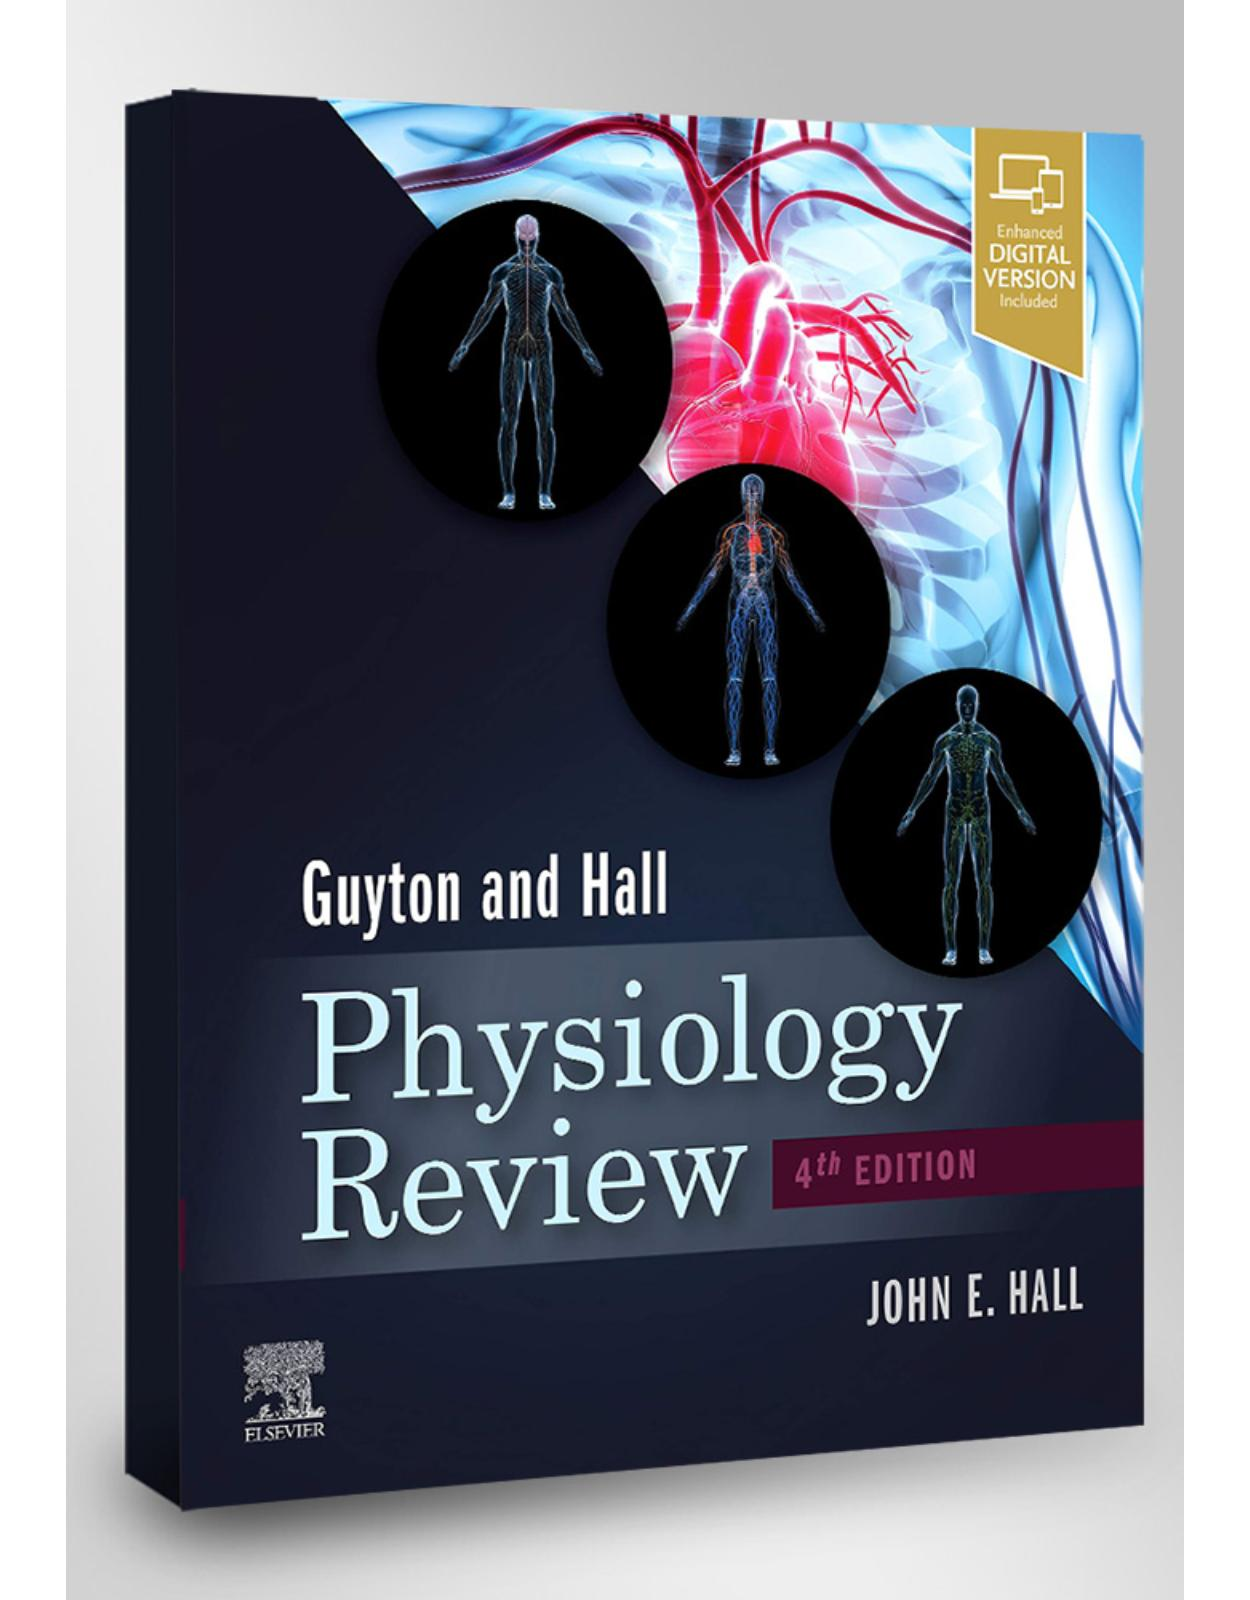 Guyton & Hall Physiology Review: Appraisal, Synthesis, and Generation of Evidence